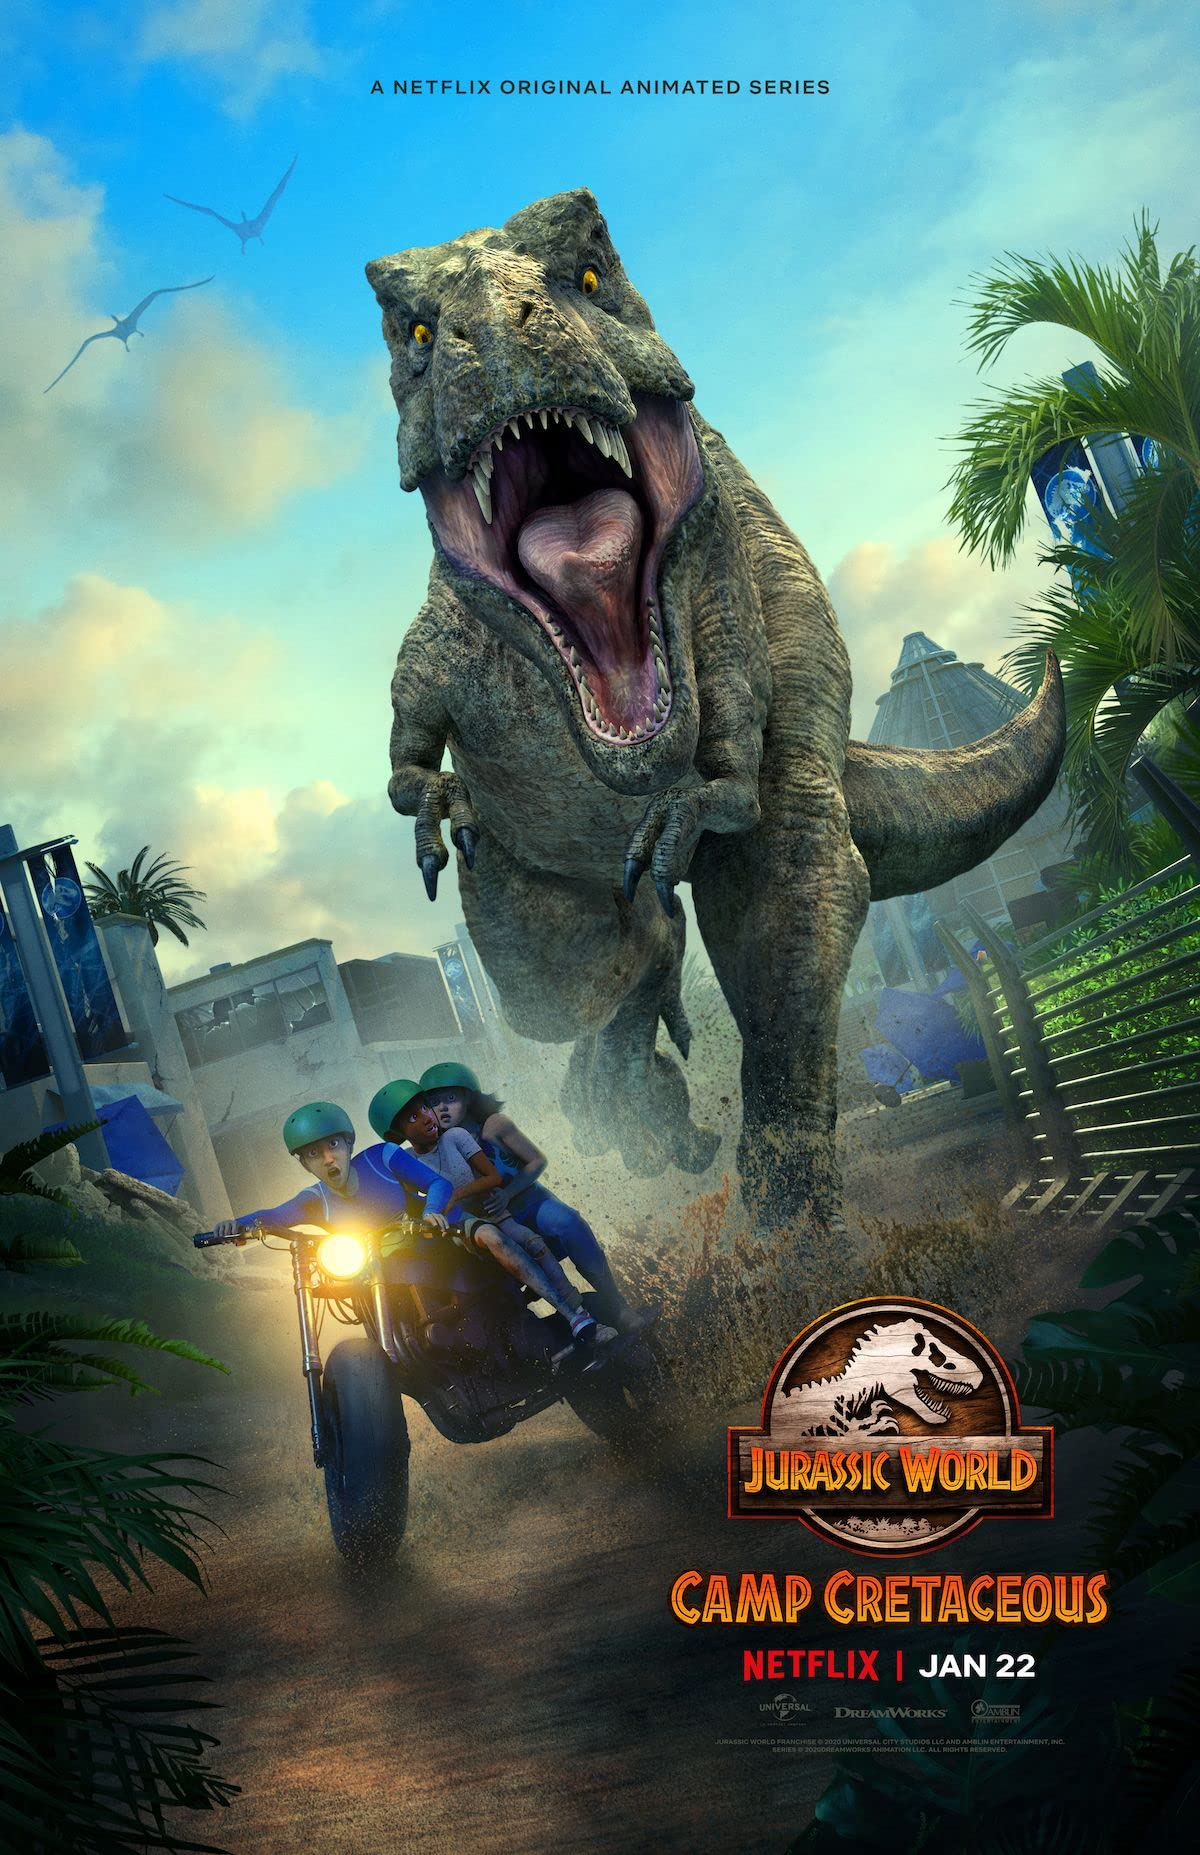 Jurassic World: Camp Cretaceous S02 (2021) Hindi Netflix Complete Web Series 720p HDRip 1.3GB Download